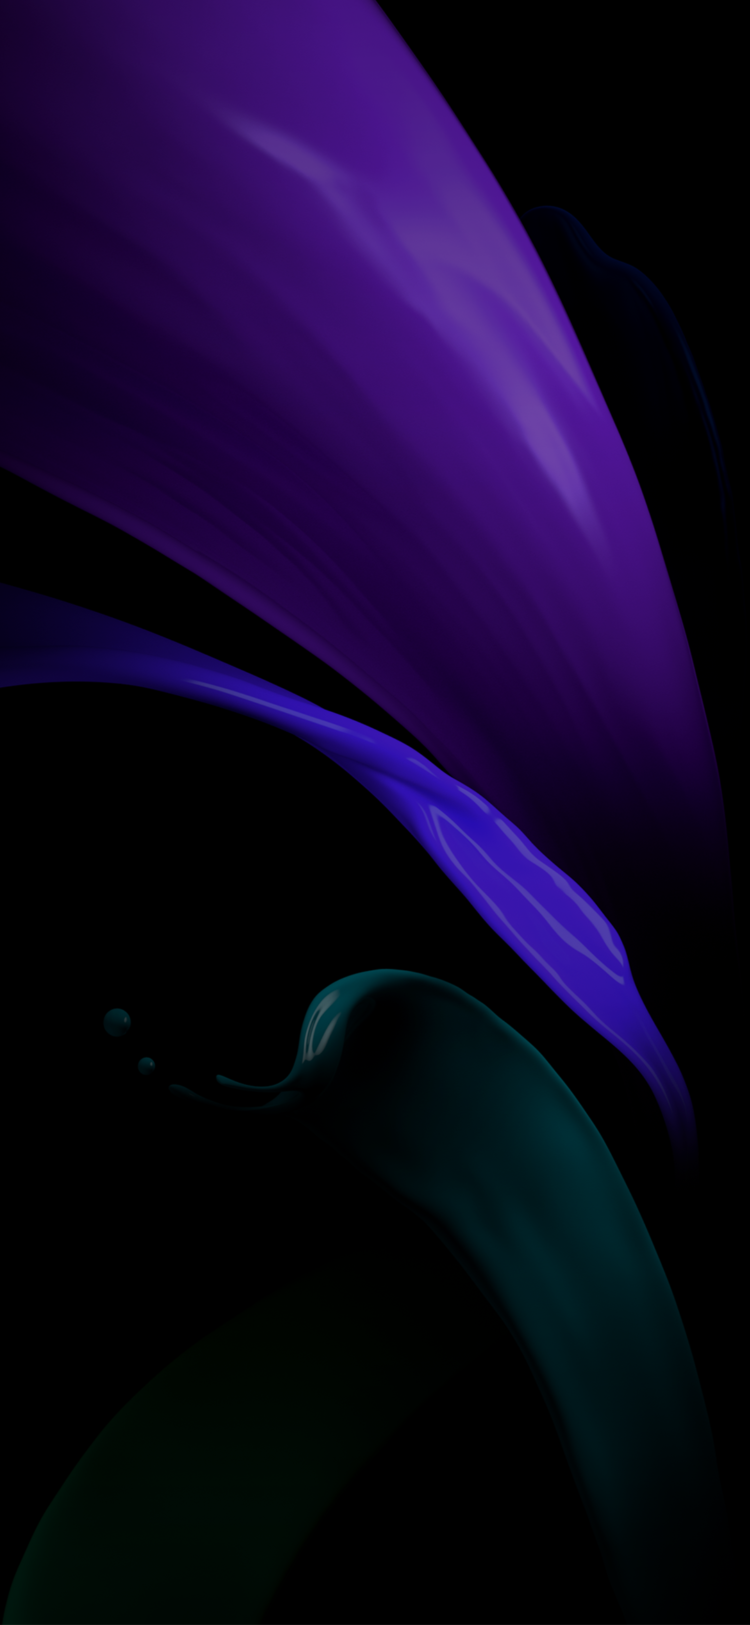 Samsung Galaxy Z Fold 2 Wallpapers Stock (1768x2208) HD Free Download